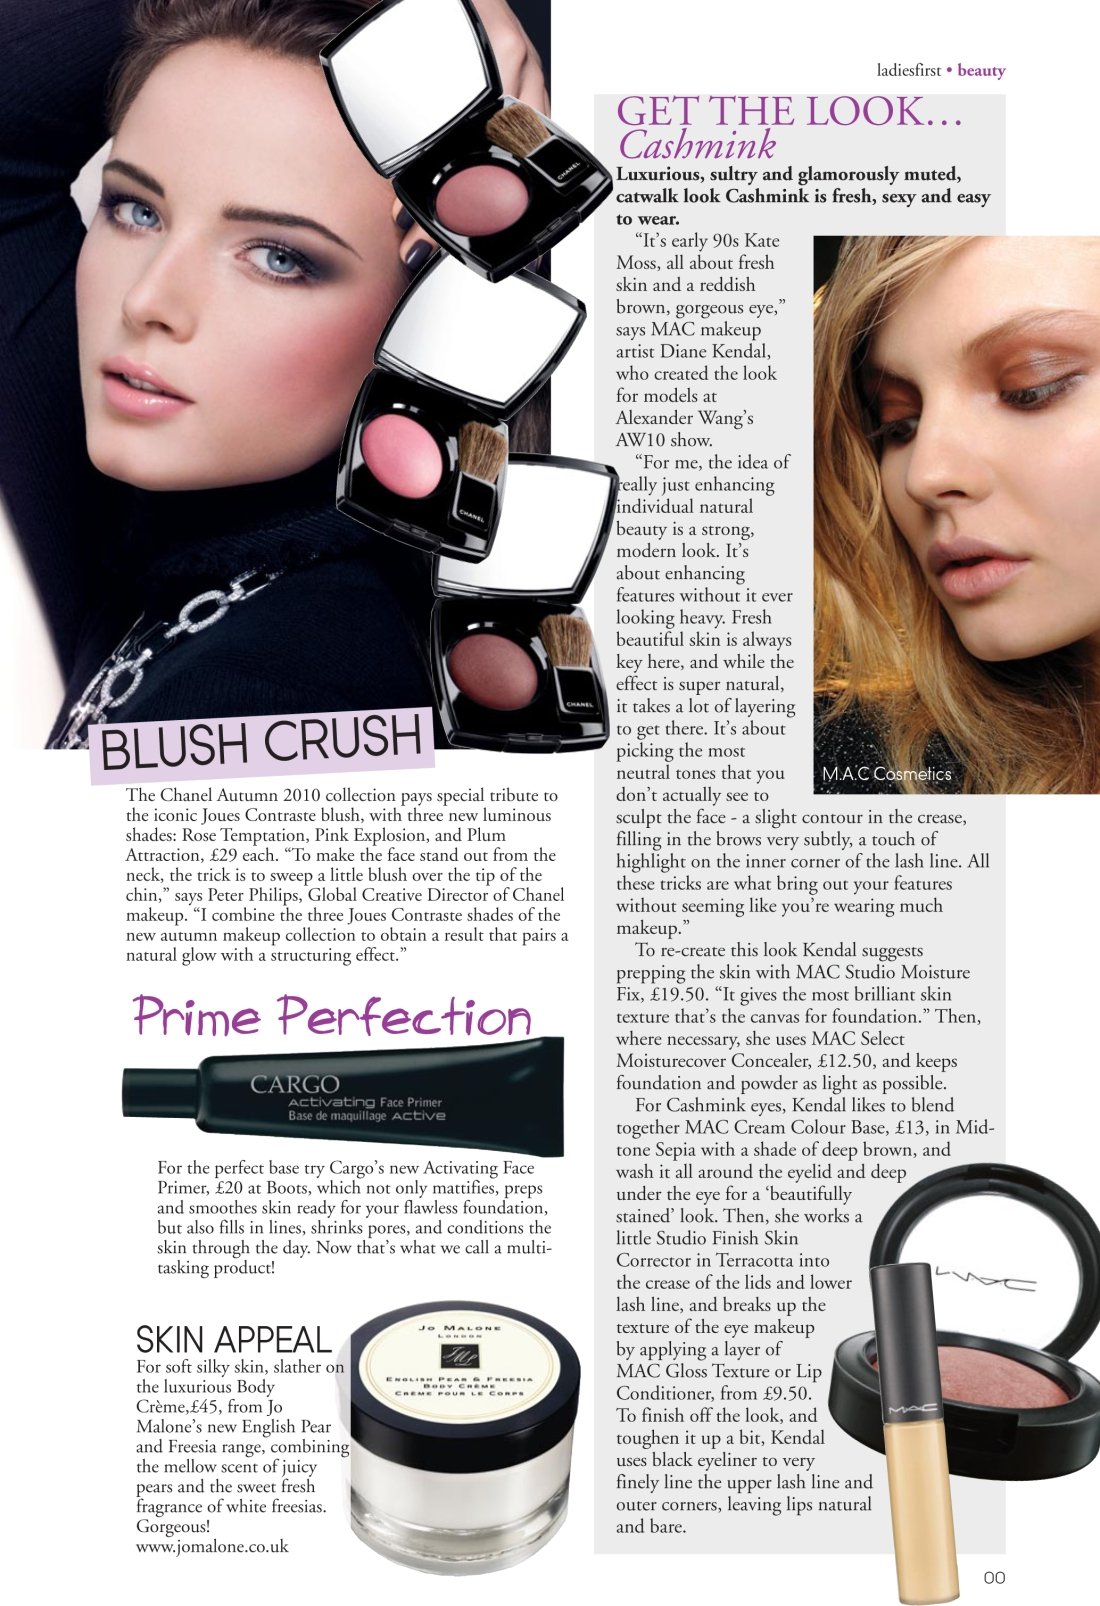 Beauty news spread - Ladies First Autumn 2010 issue-page 2-Amy Lewis